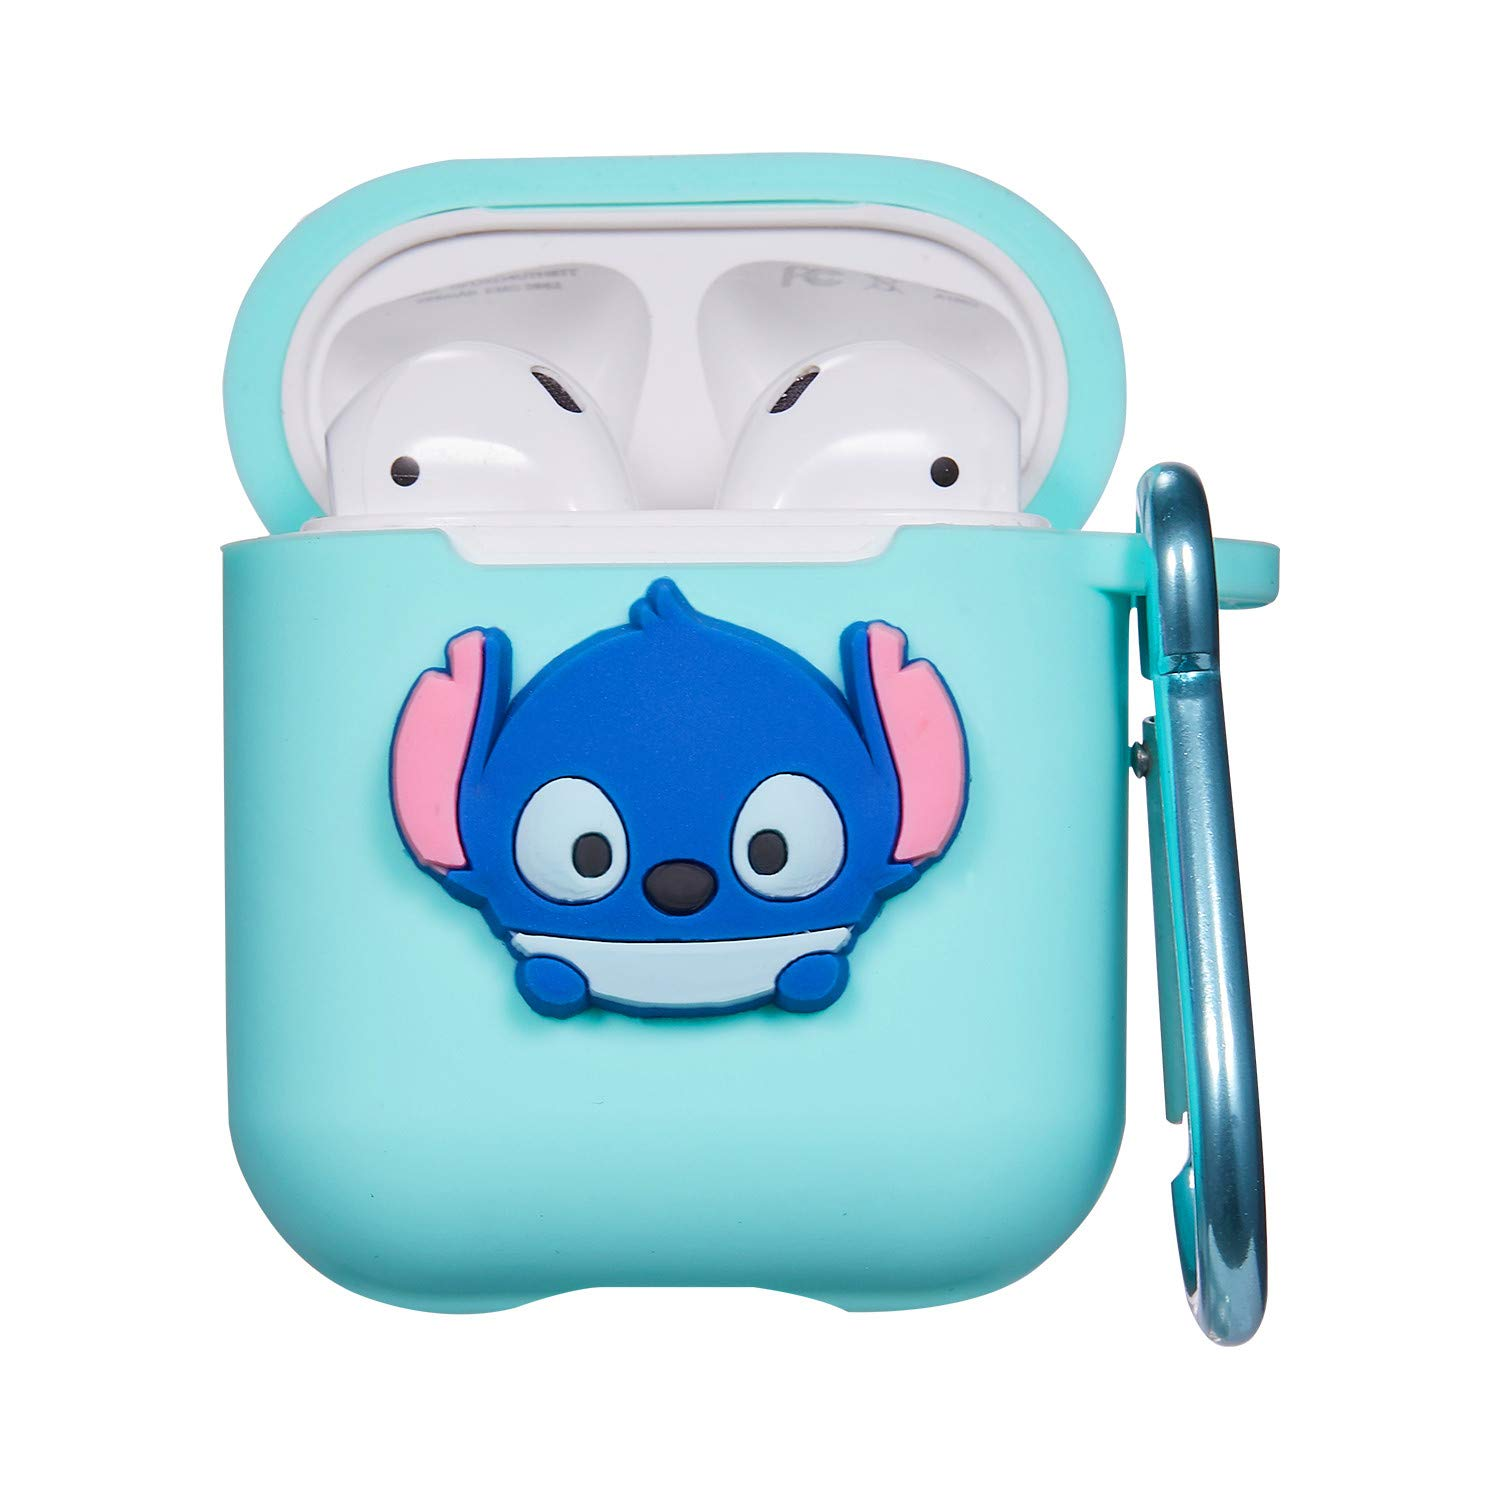 Punswan for Airpods 1 & 2 Charging Case,3D Cute Silicone Cartoon Airpod Charging Dock Cover,Character Design Air pod Girls Kids Women Soft Full ...